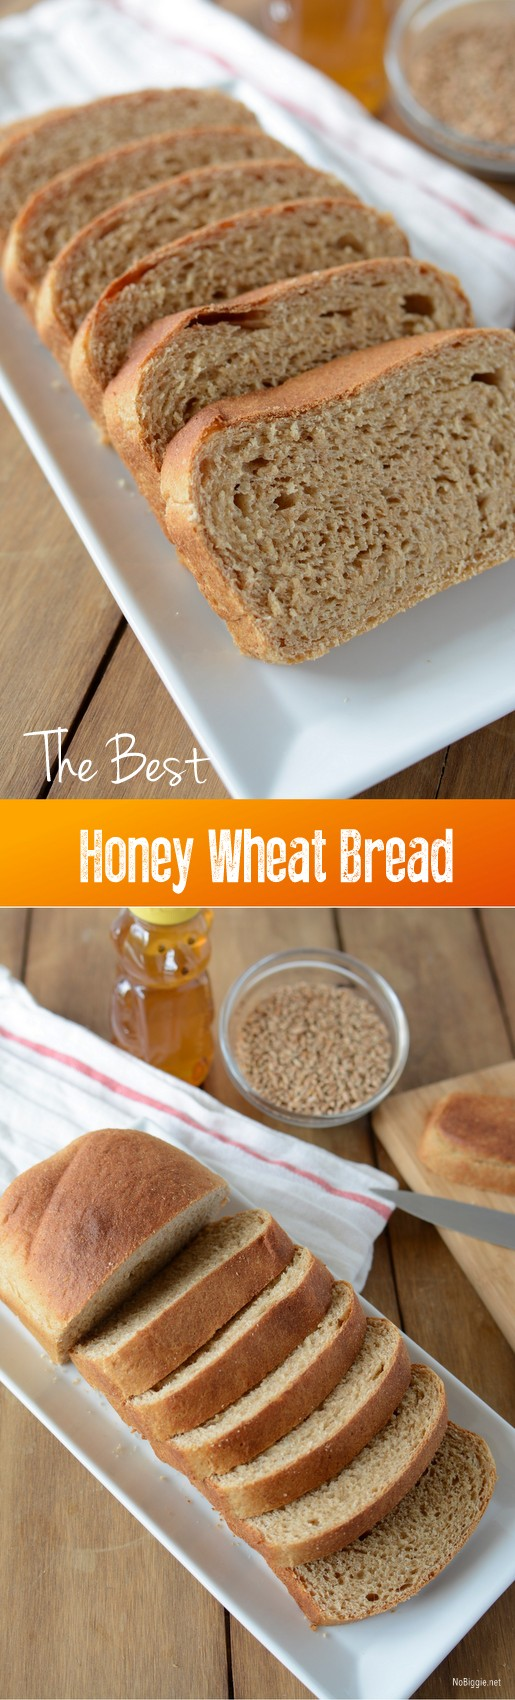 The best honey wheat bread | Recipe on NoBiggie.net